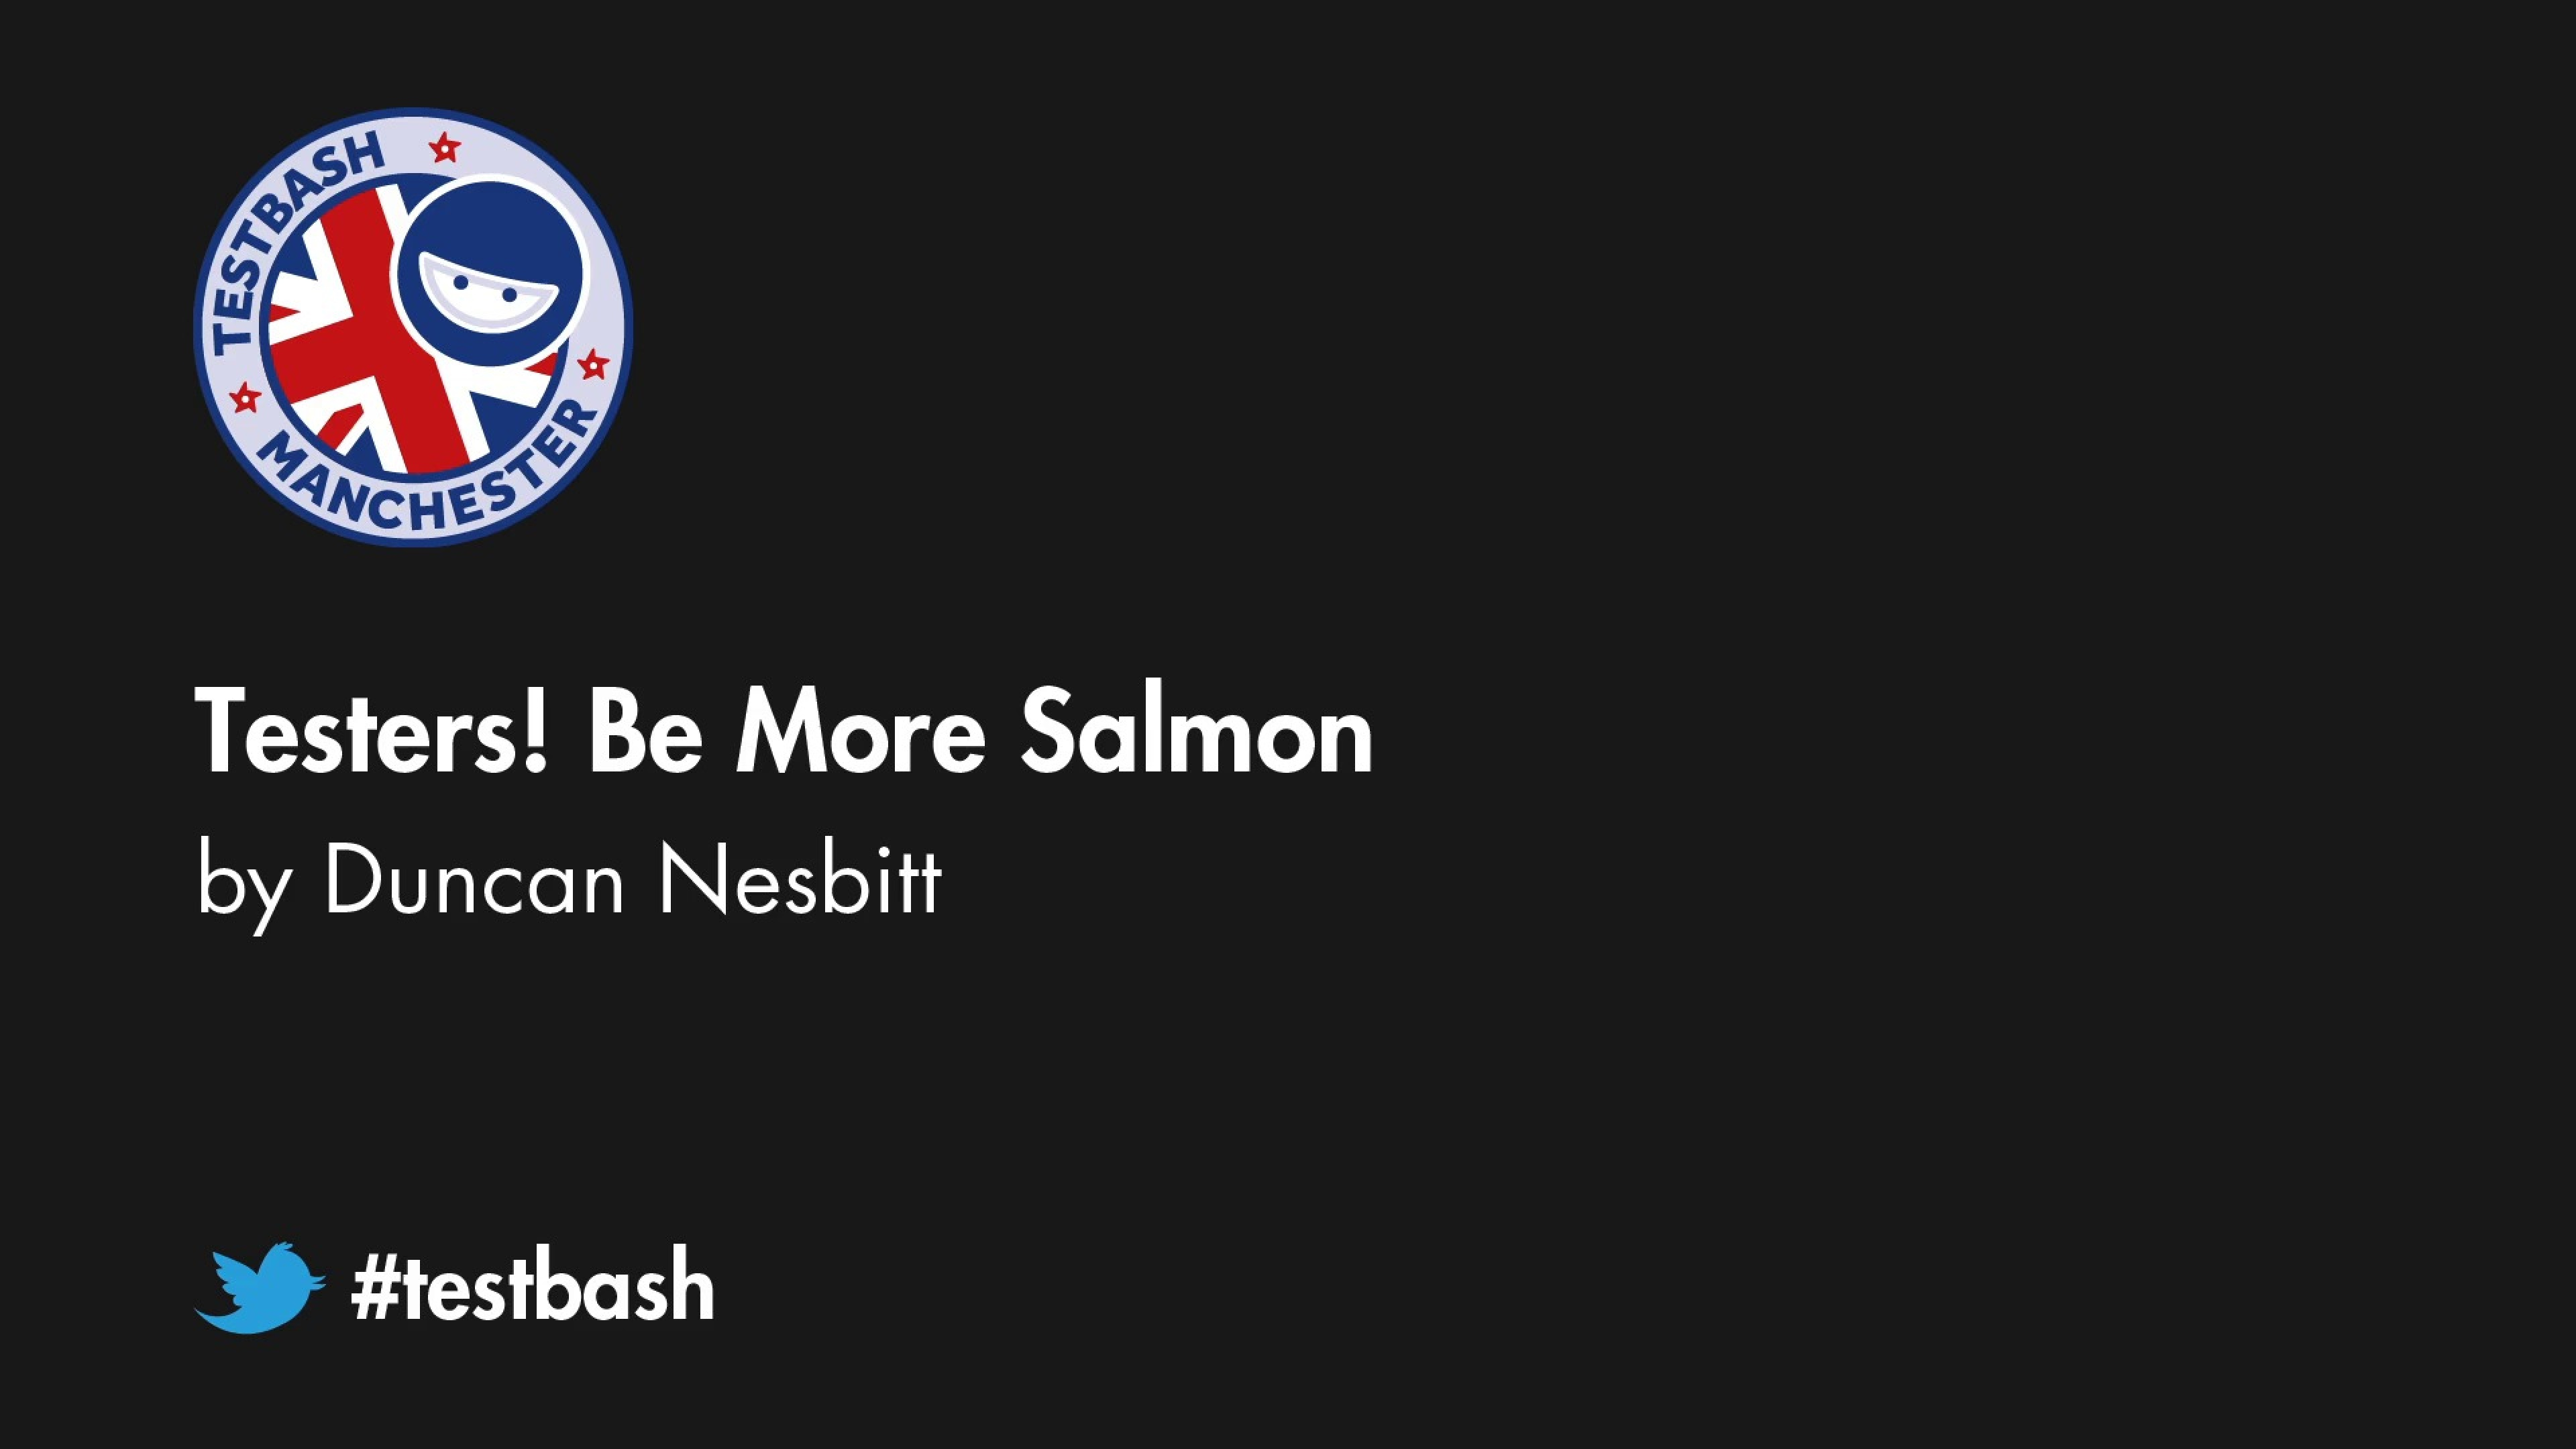 Testers! Be More Salmon! – Duncan Nisbet